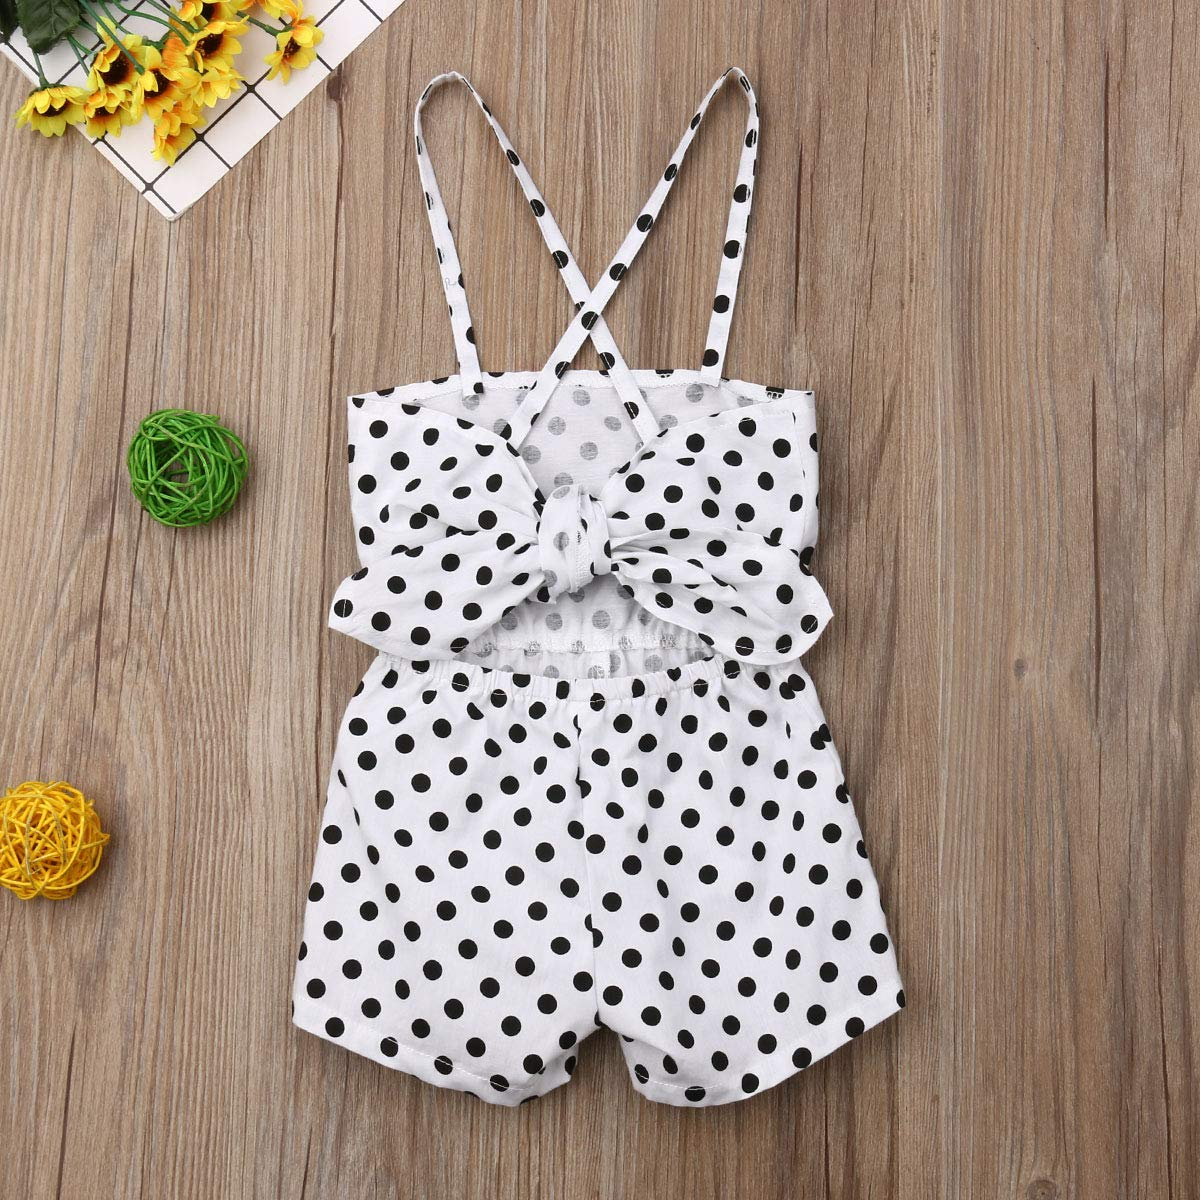 BeQeuewll Toddler Baby Girl Strap Overalls Jumpsuit Romper Outfits Summer Clothes